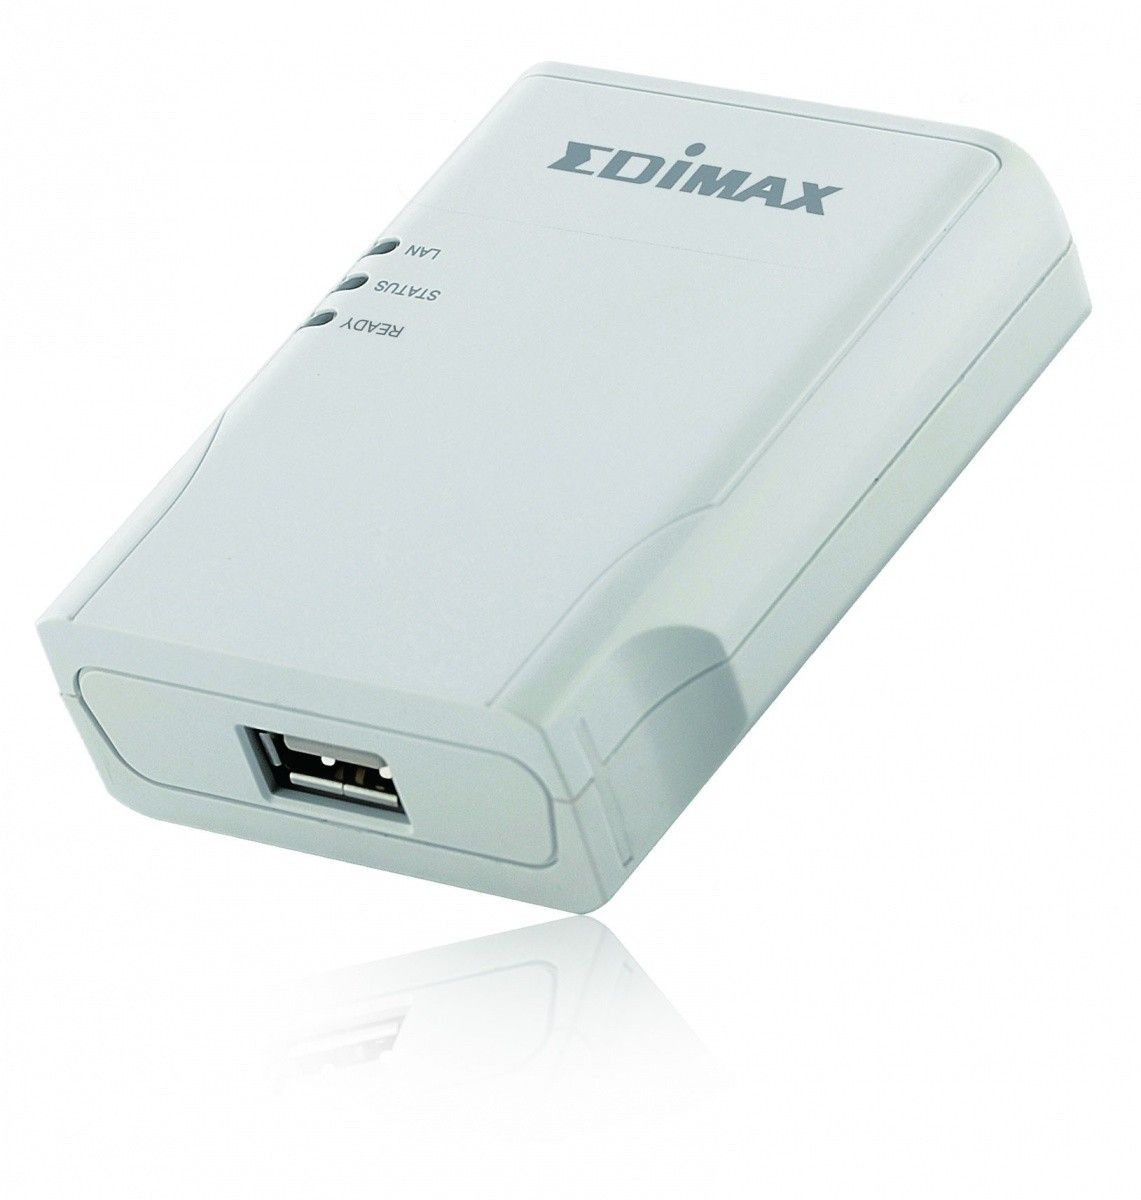 Edimax PS-1206MF Print S. USB 2.0 Port MFP serv